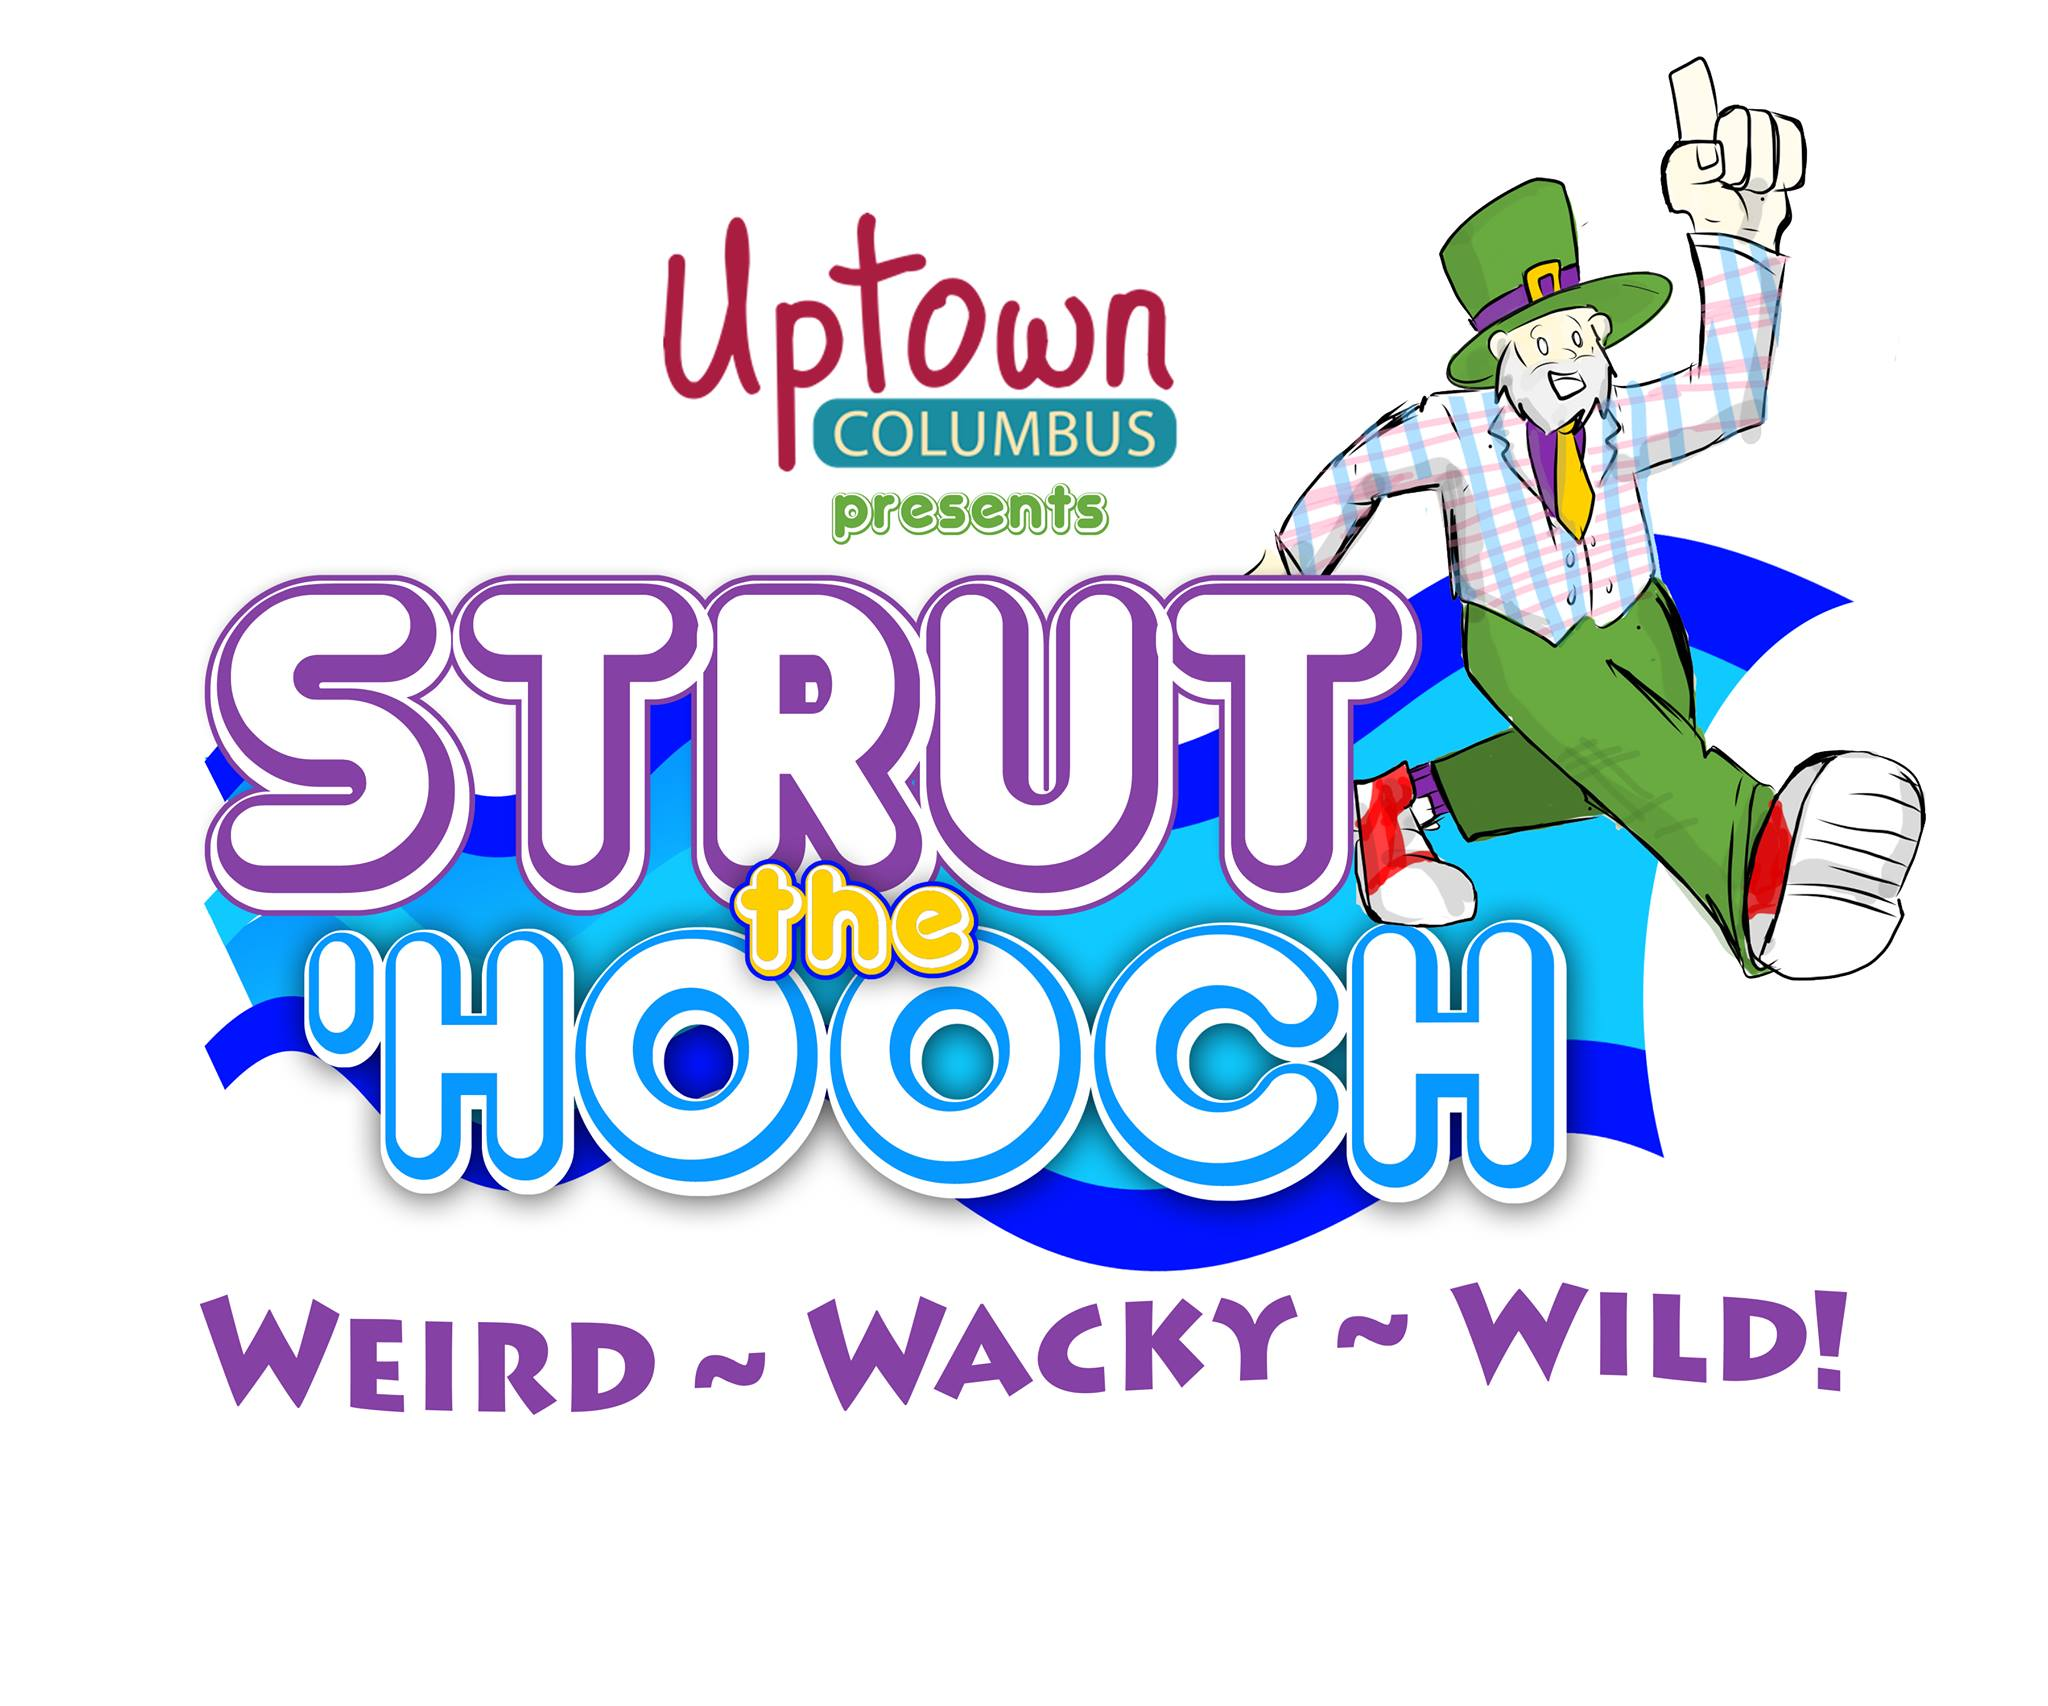 6th Annual Uptown Columbus Strut the Hooch Parade